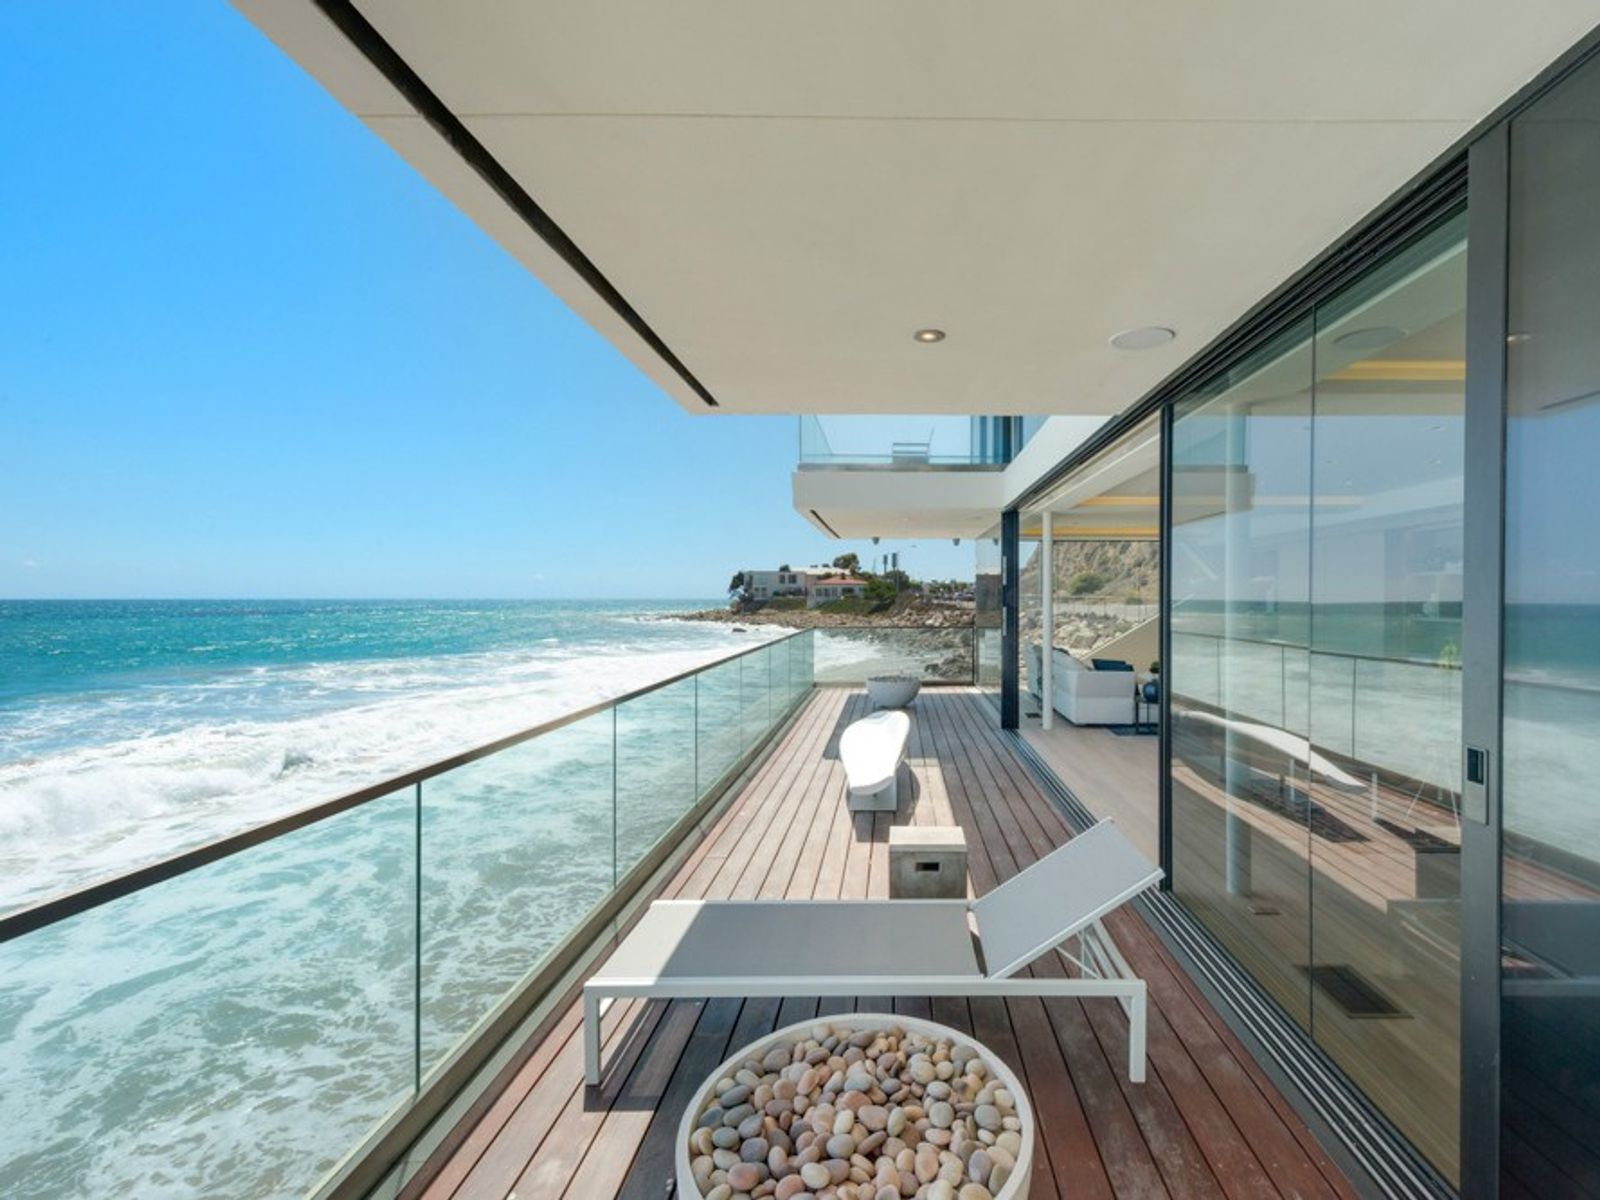 Rebuilt, Redesigned, Reimagined, Malibu CA Single Family Home - Los Angeles Real Estate